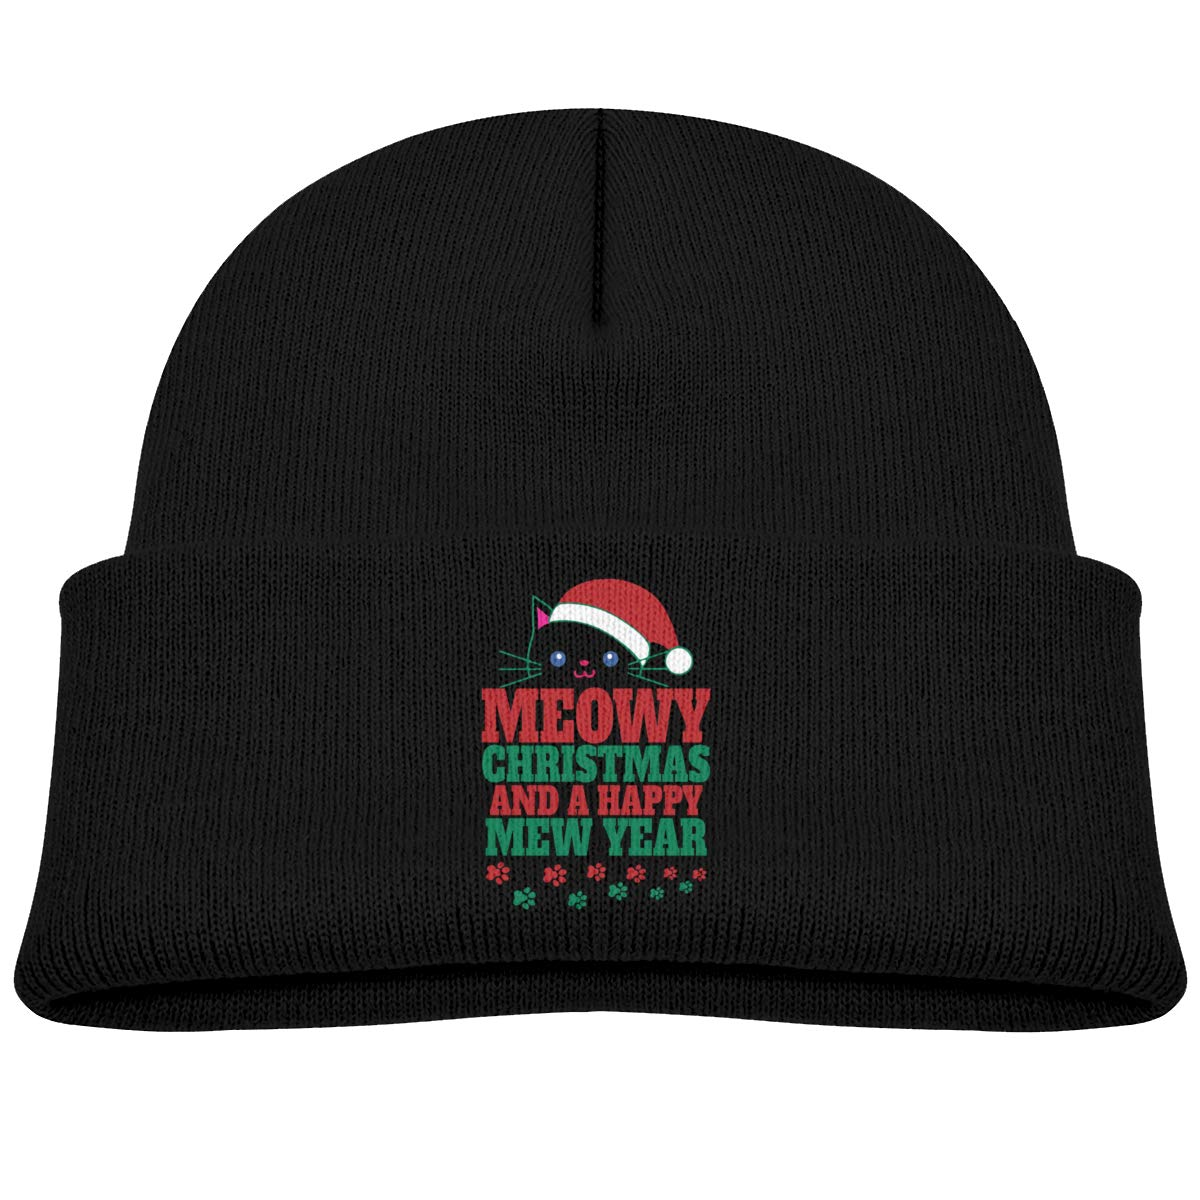 Qiop Nee Meowy Christmas and A Happy Mew Year Beanie Caps Knit Hats Winter Baby Boys